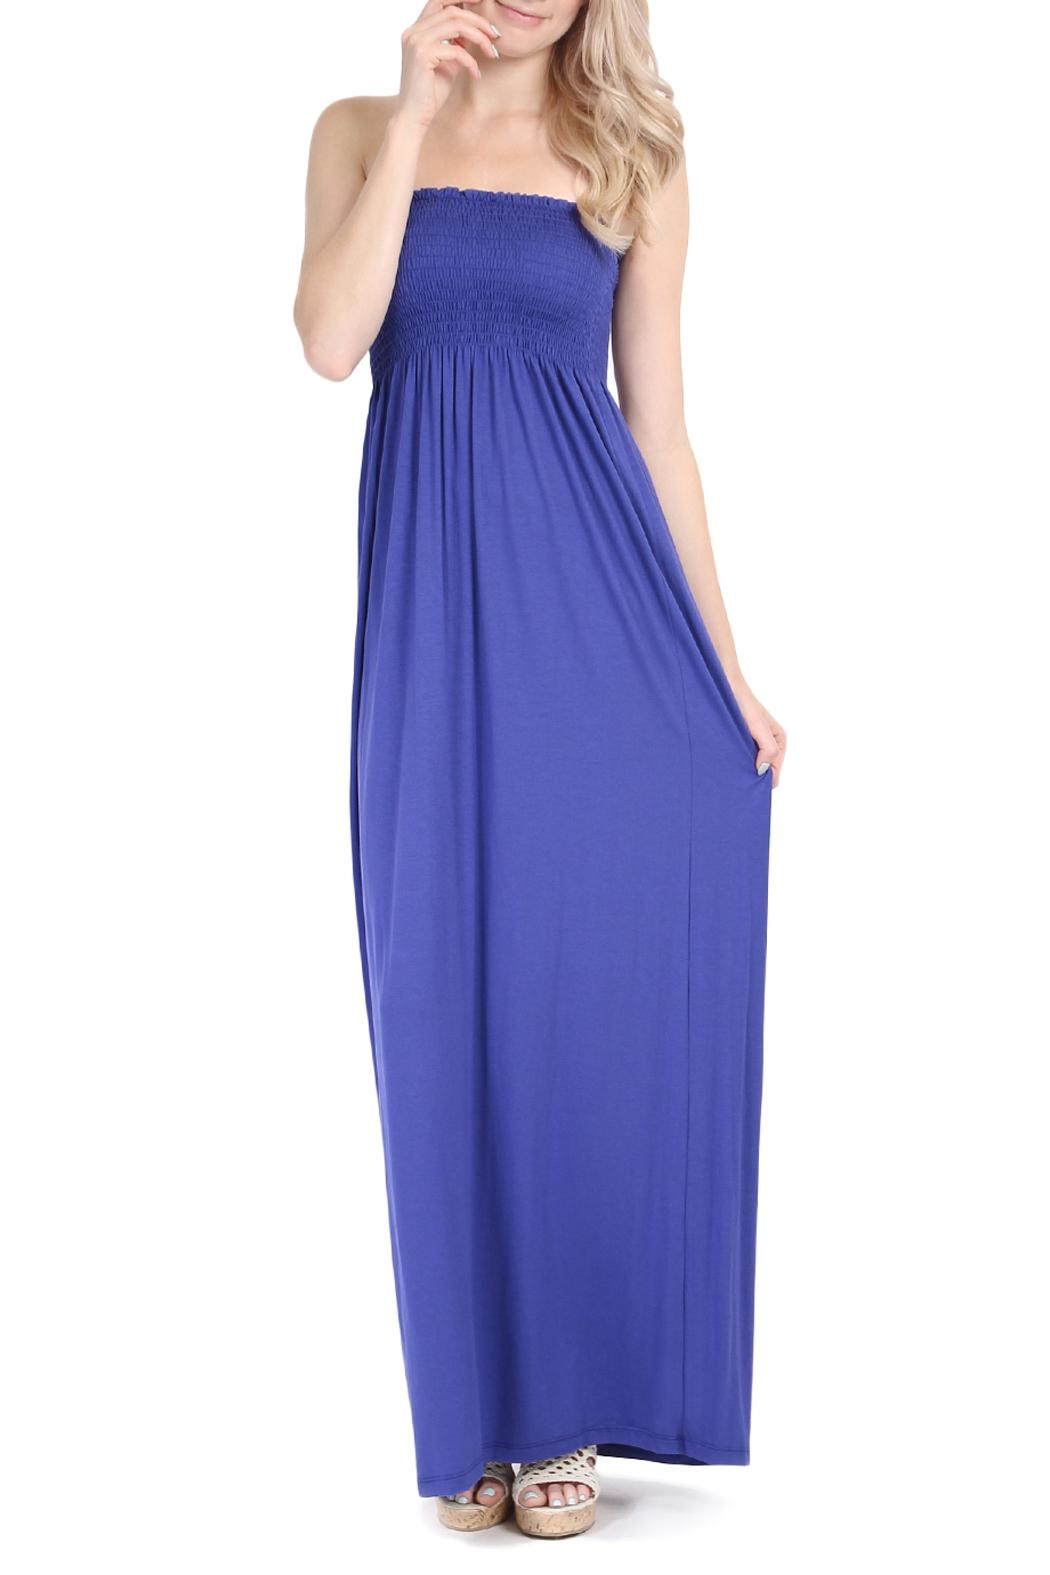 Riah Fashion Strapless Tube Maxi Dress - Front Cropped Image